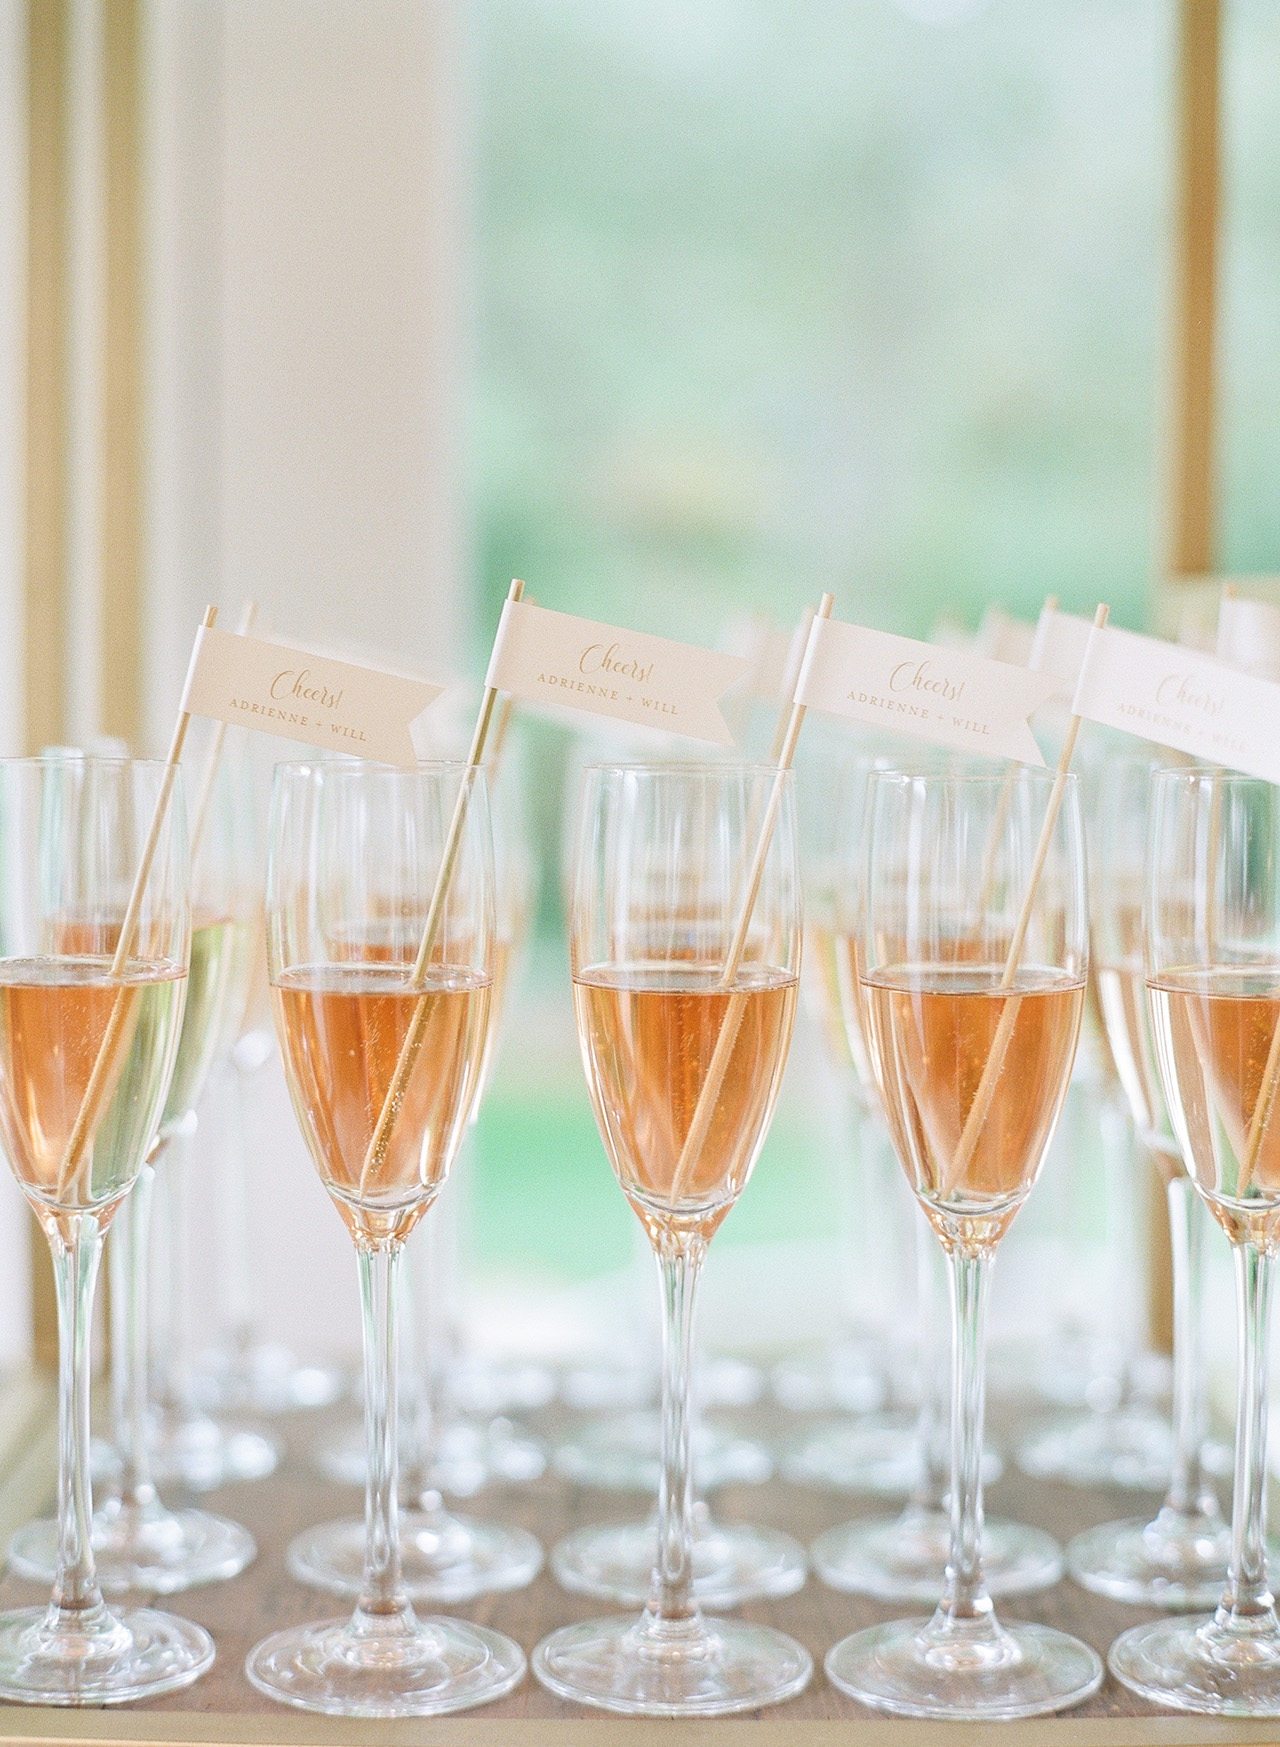 A Champagne Station